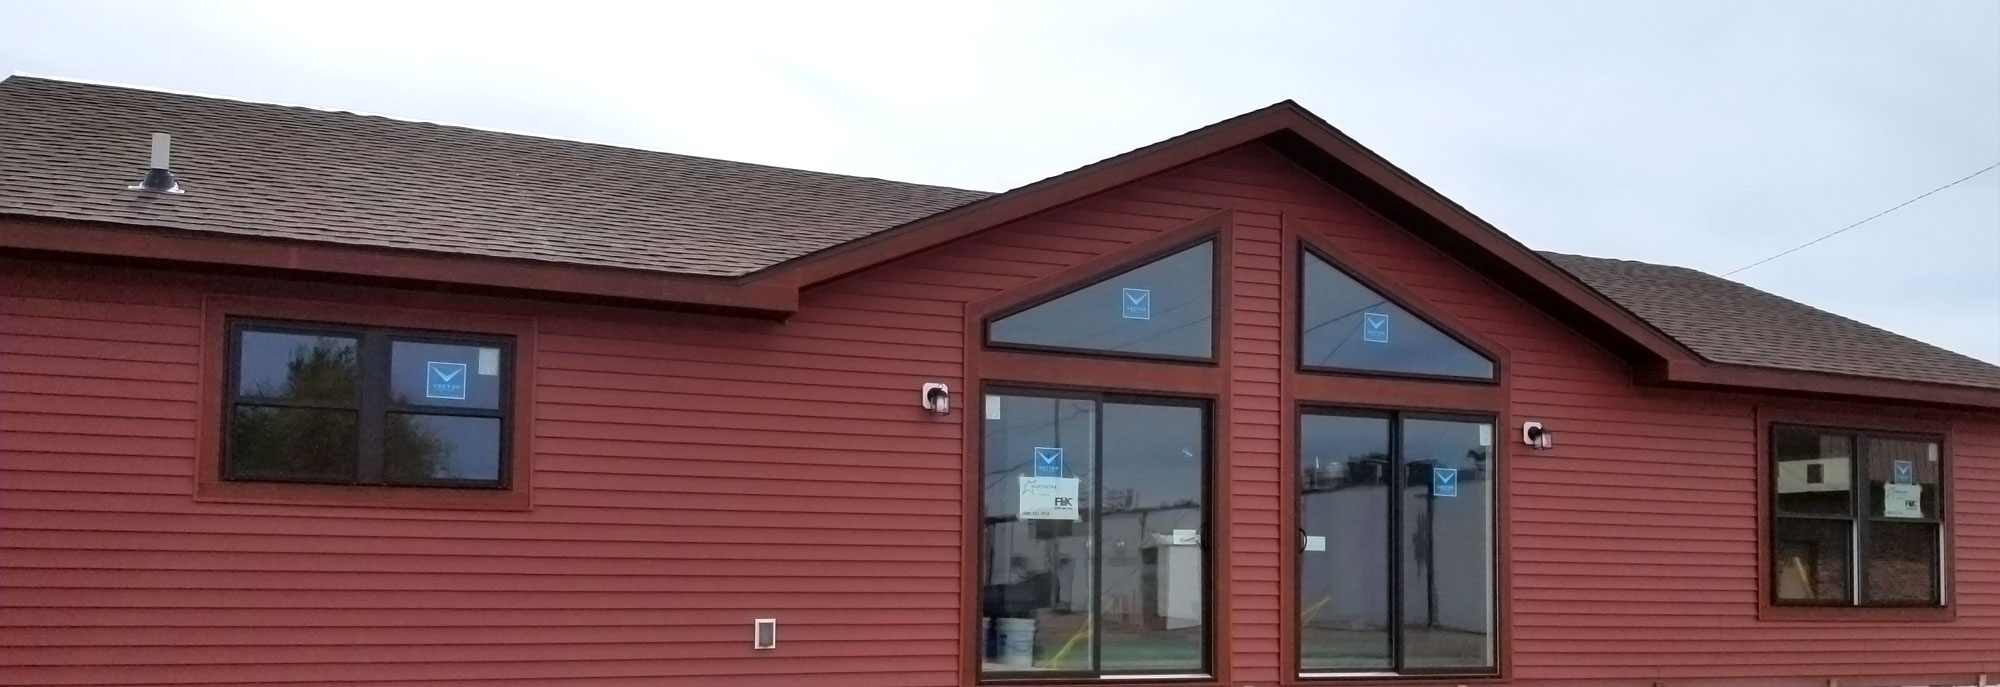 Exterior of the Hudson Model Modular Home built by Factory Home Center